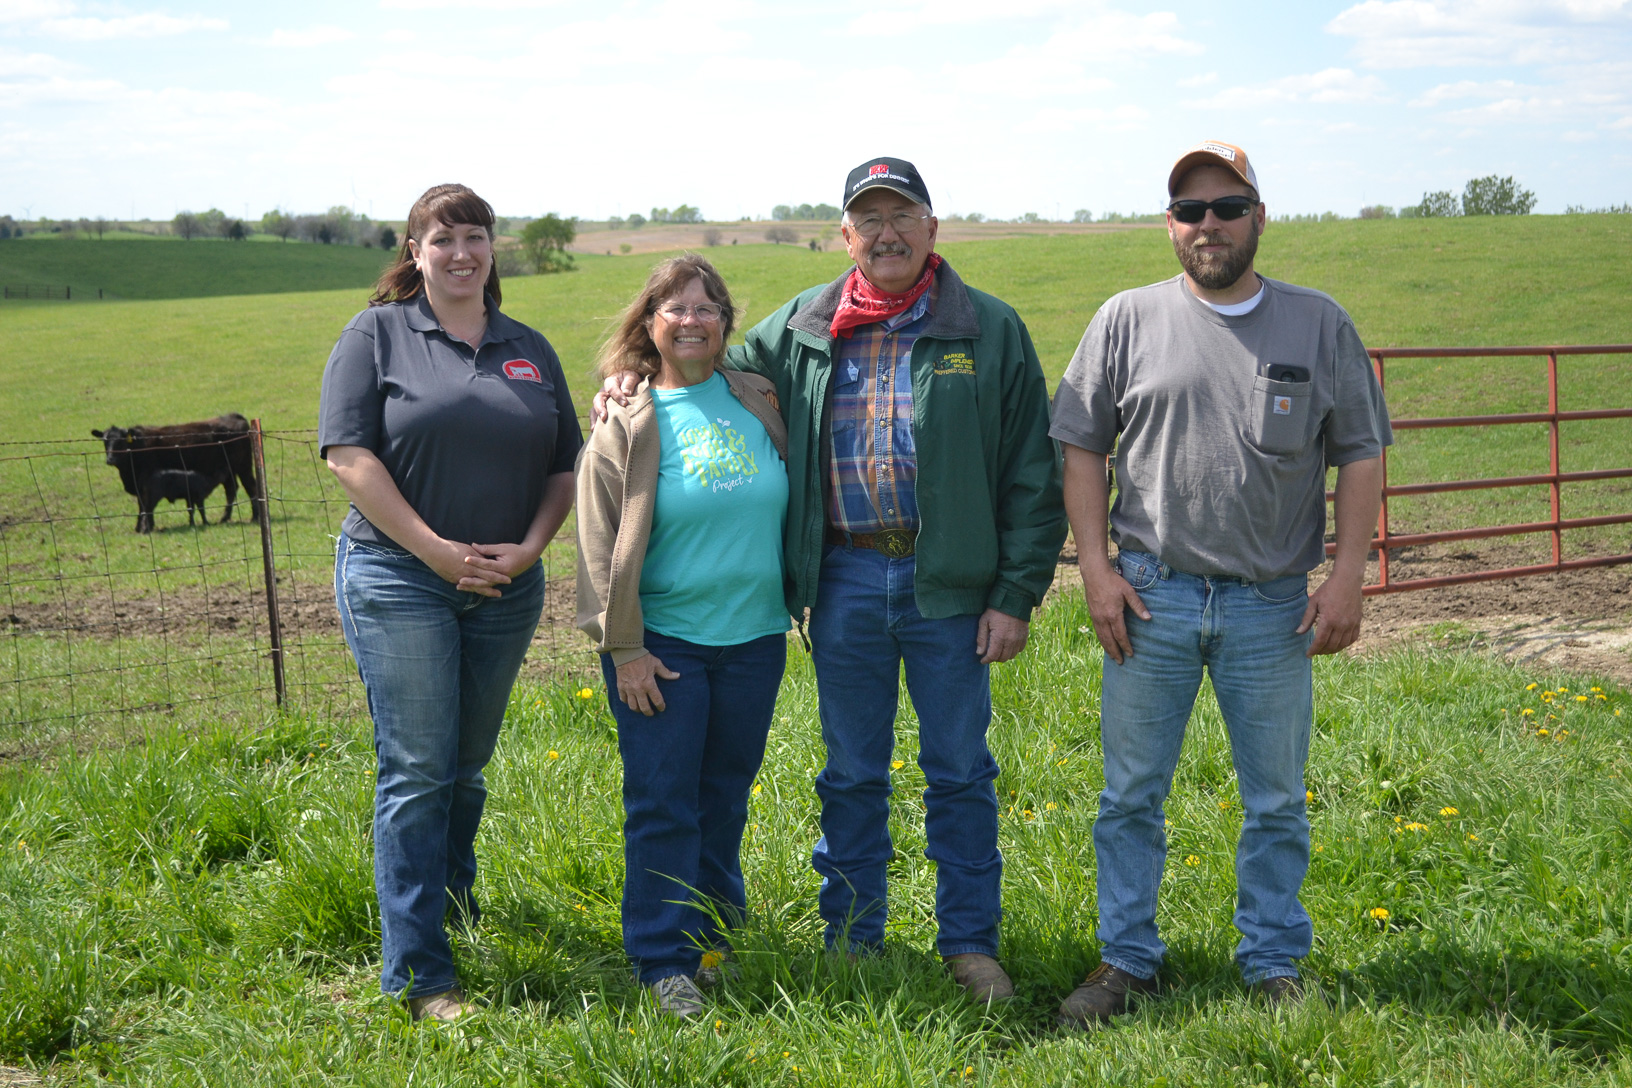 With a wet spring wreaking havoc on country roads near Justin and Corinne's pastures, the tour was moved to Justin's parents, Glenn and Bev Rowe, who run Rowe Ranch in Lorimor. Photo credit: Aaron Putze/Iowa Soybean Association